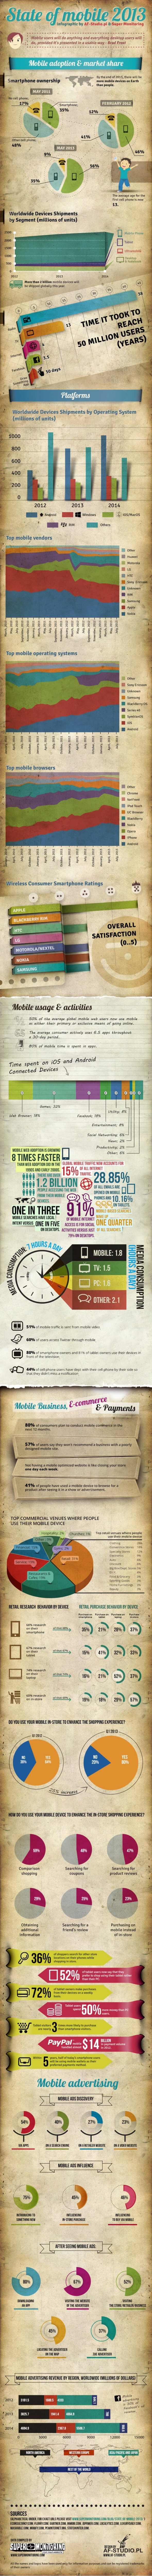 Infographic 2013 Mobile Life